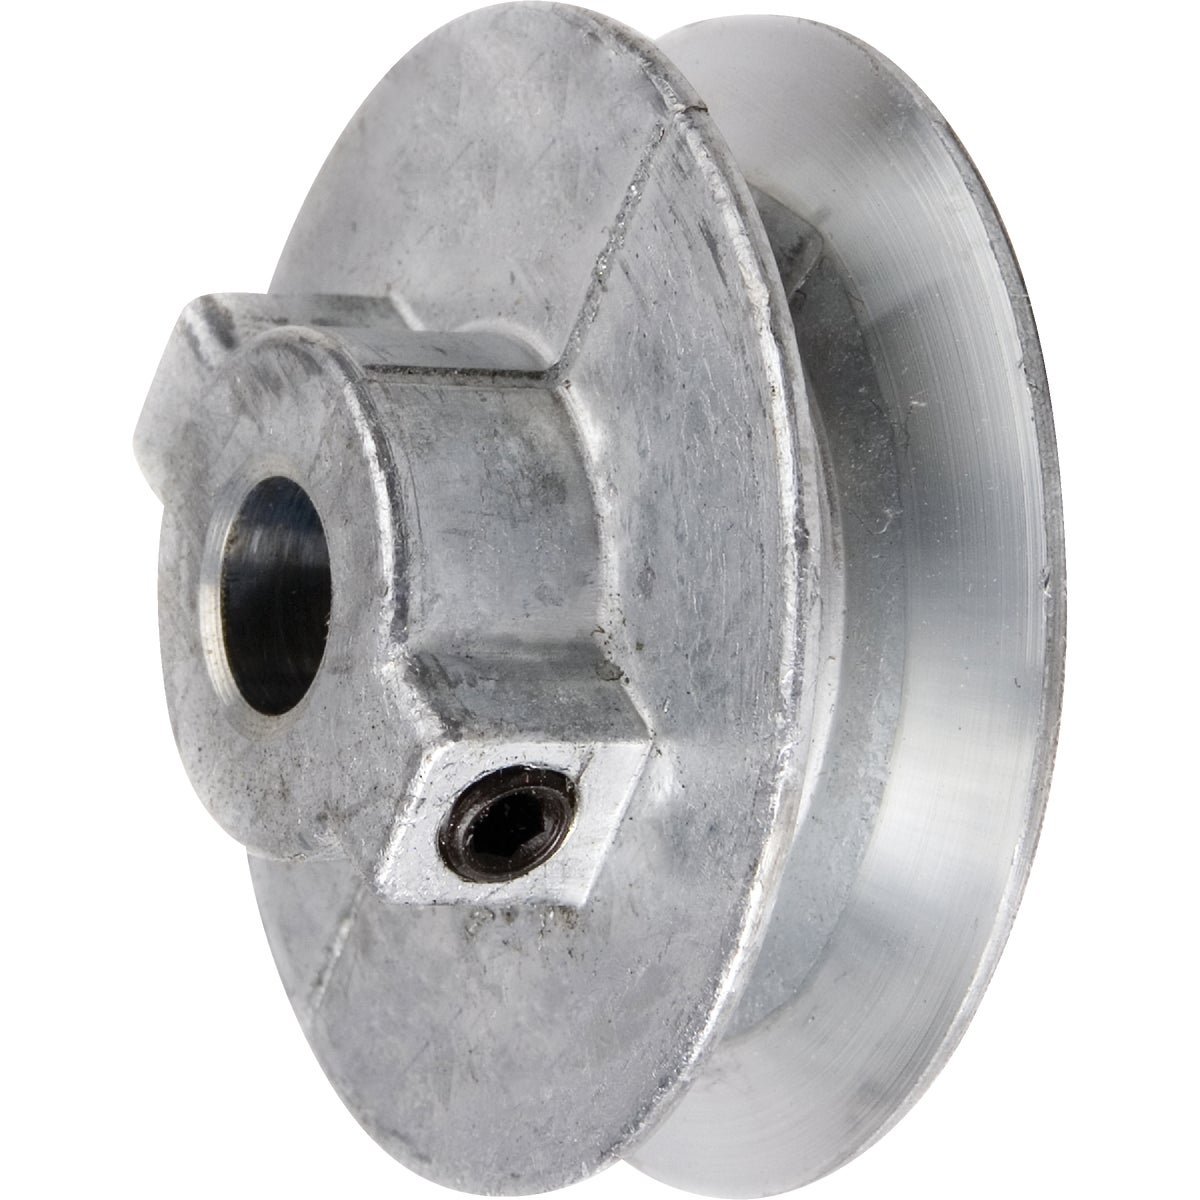 2-1/4X3/4 PULLEY - 225A7 by Chicago Die Casting